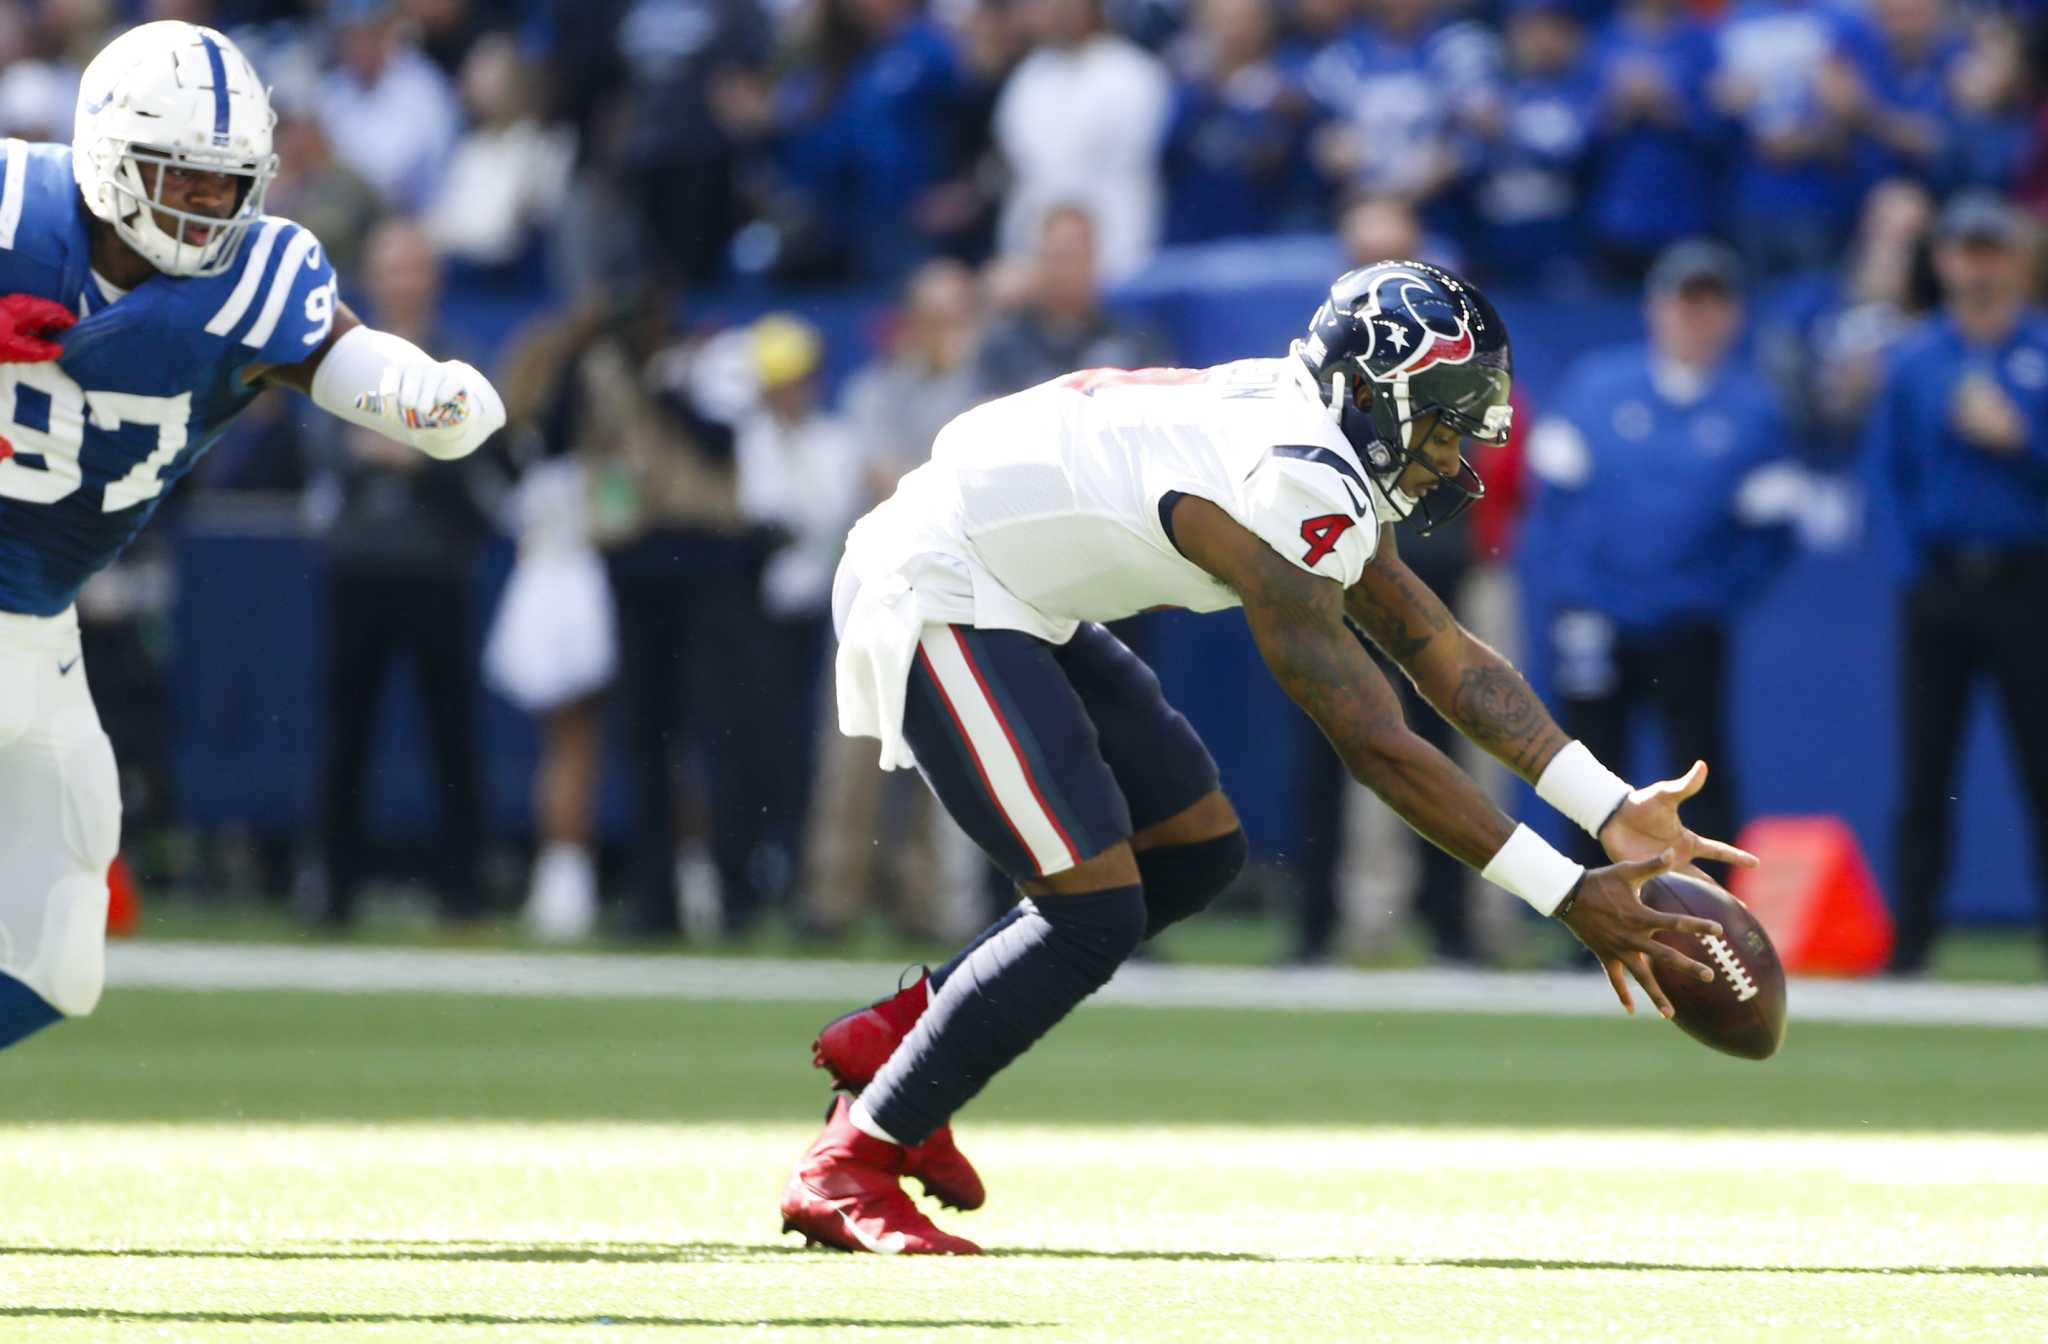 Colts hold off Texans to take first place in AFC South